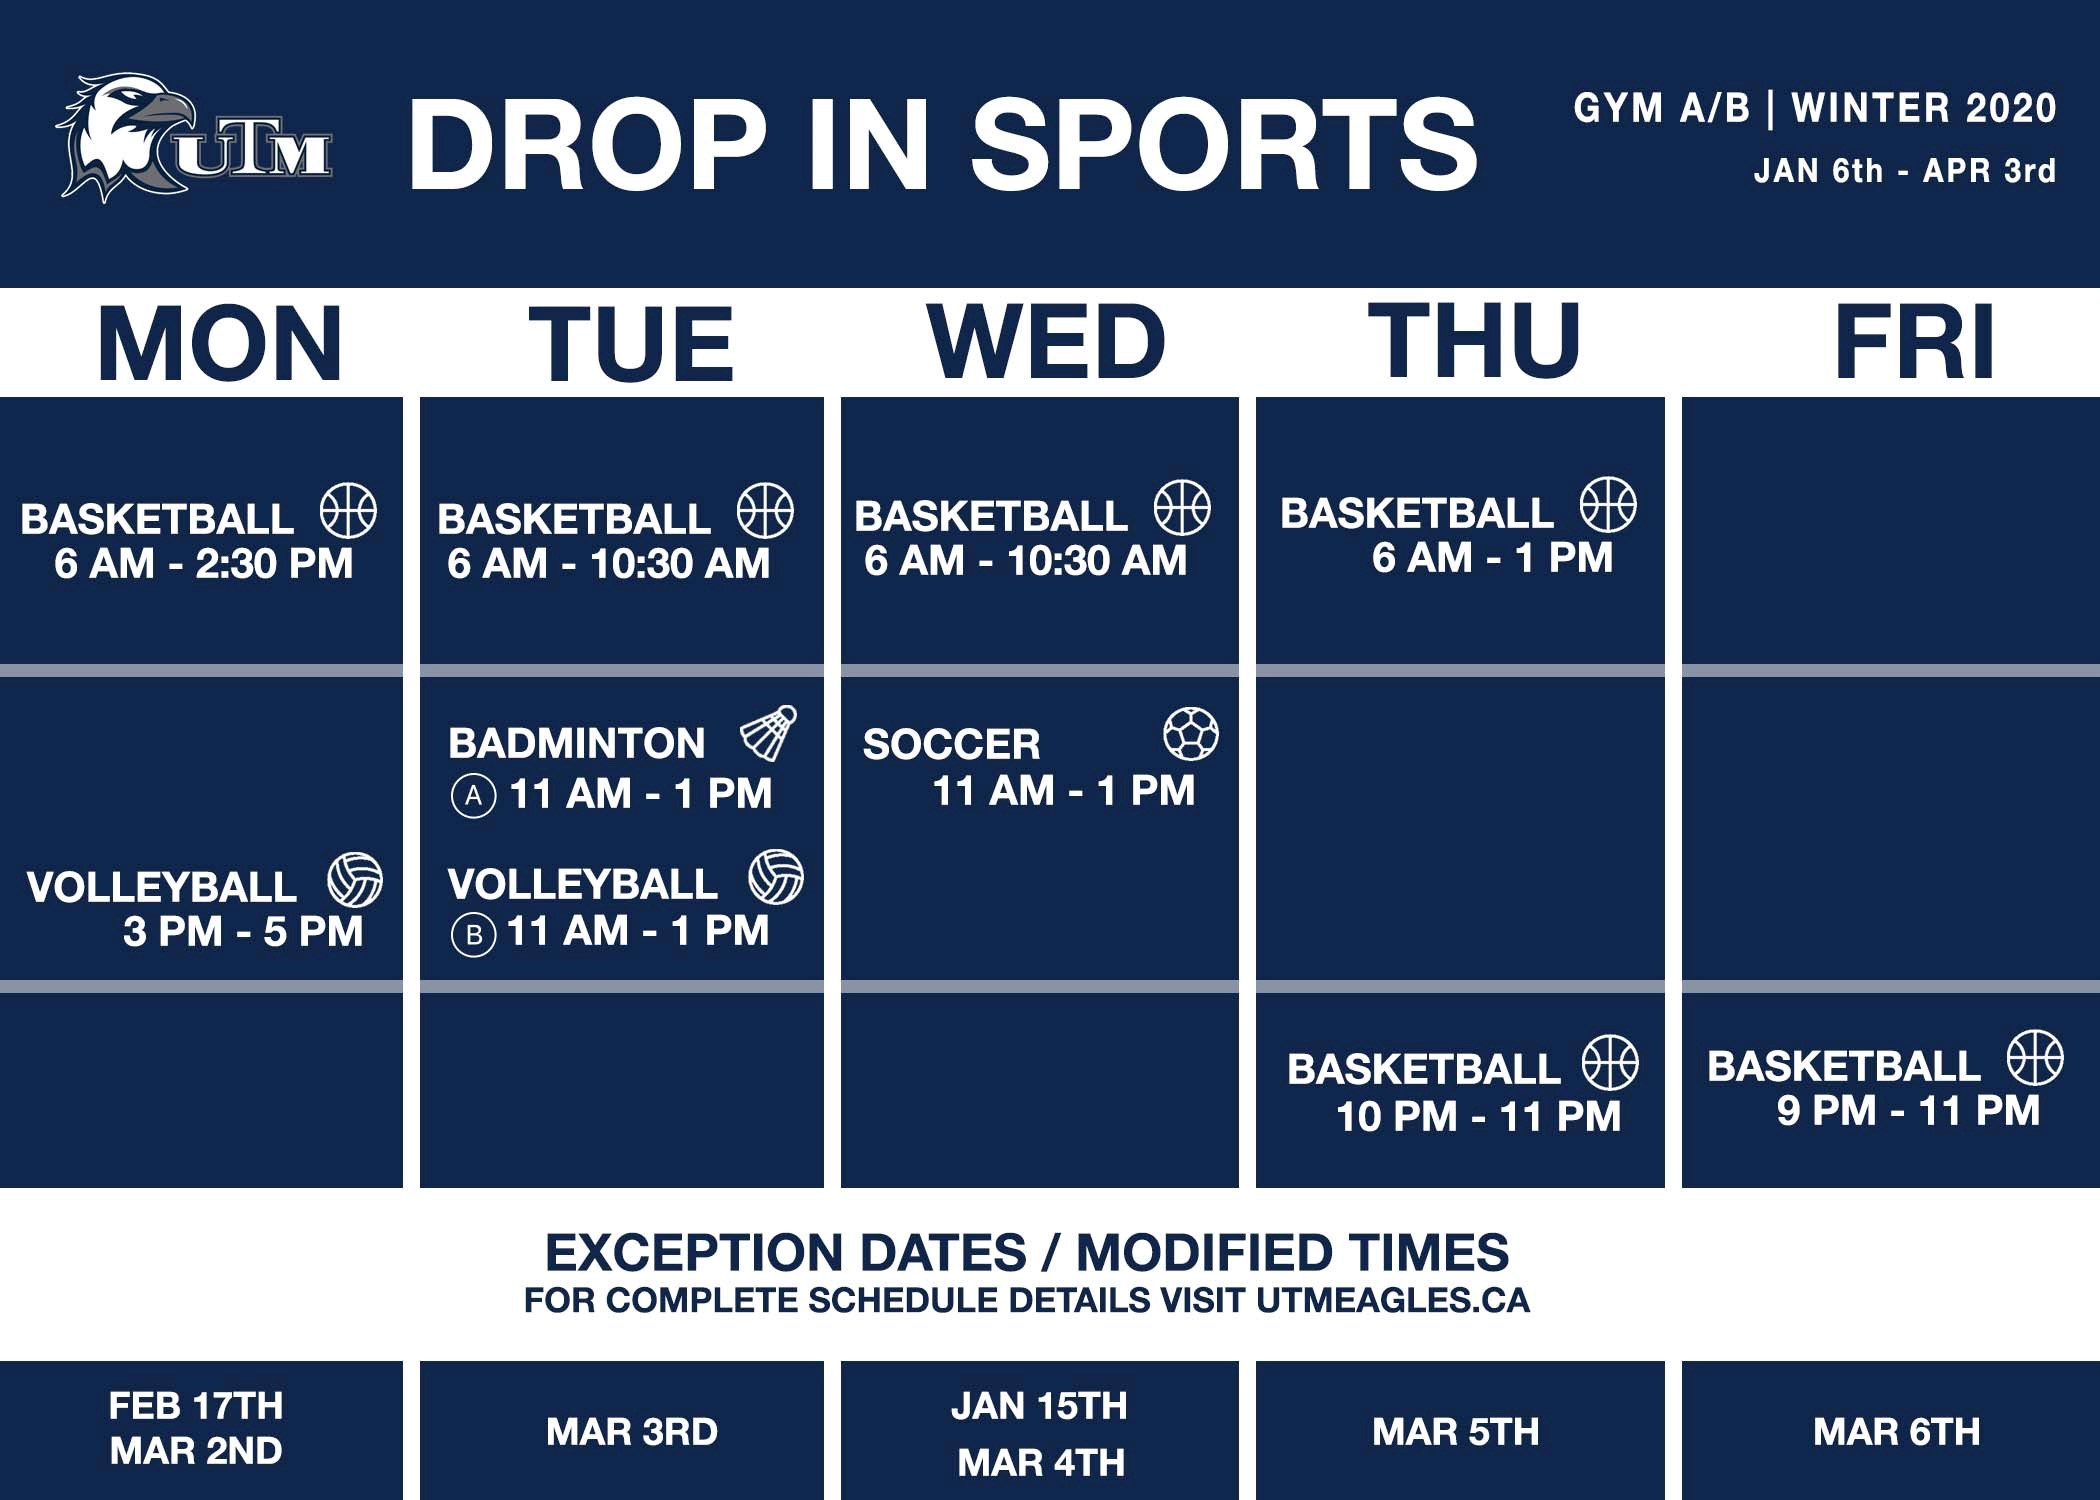 Drop-in schedule for Gym AB